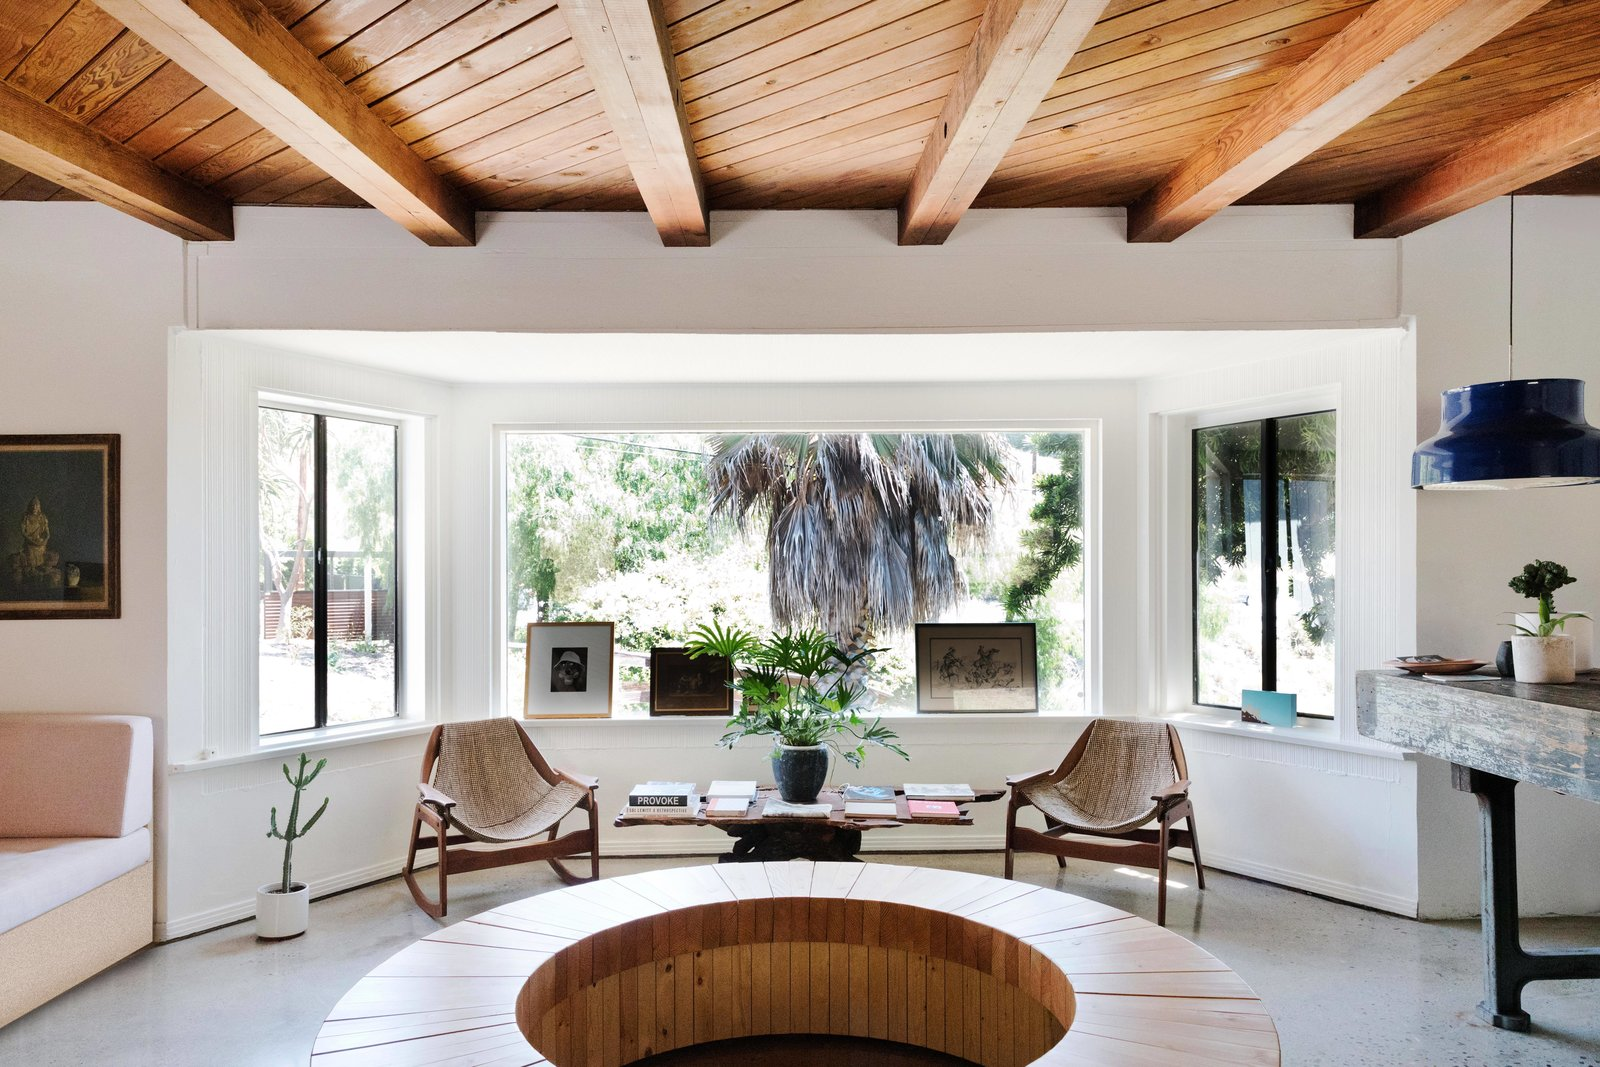 The rooms were designed to echo the region's bungalow-style homes with simple midcentury elements. Each of the 13 rooms feature exposed white wood beams and offer private patios with handmade hammocks. Bed frames by Design Within Reach host Casper mattresses where guests can rest their heads after a long day of surf and sun. Tagged: Living Room, Sofa, Pendant Lighting, Chair, Coffee Tables, and Terrazzo Floor.  Best Photos from Do Malibu in Style With the Native Hotel, a Rejuvenated Hollywood Favorite